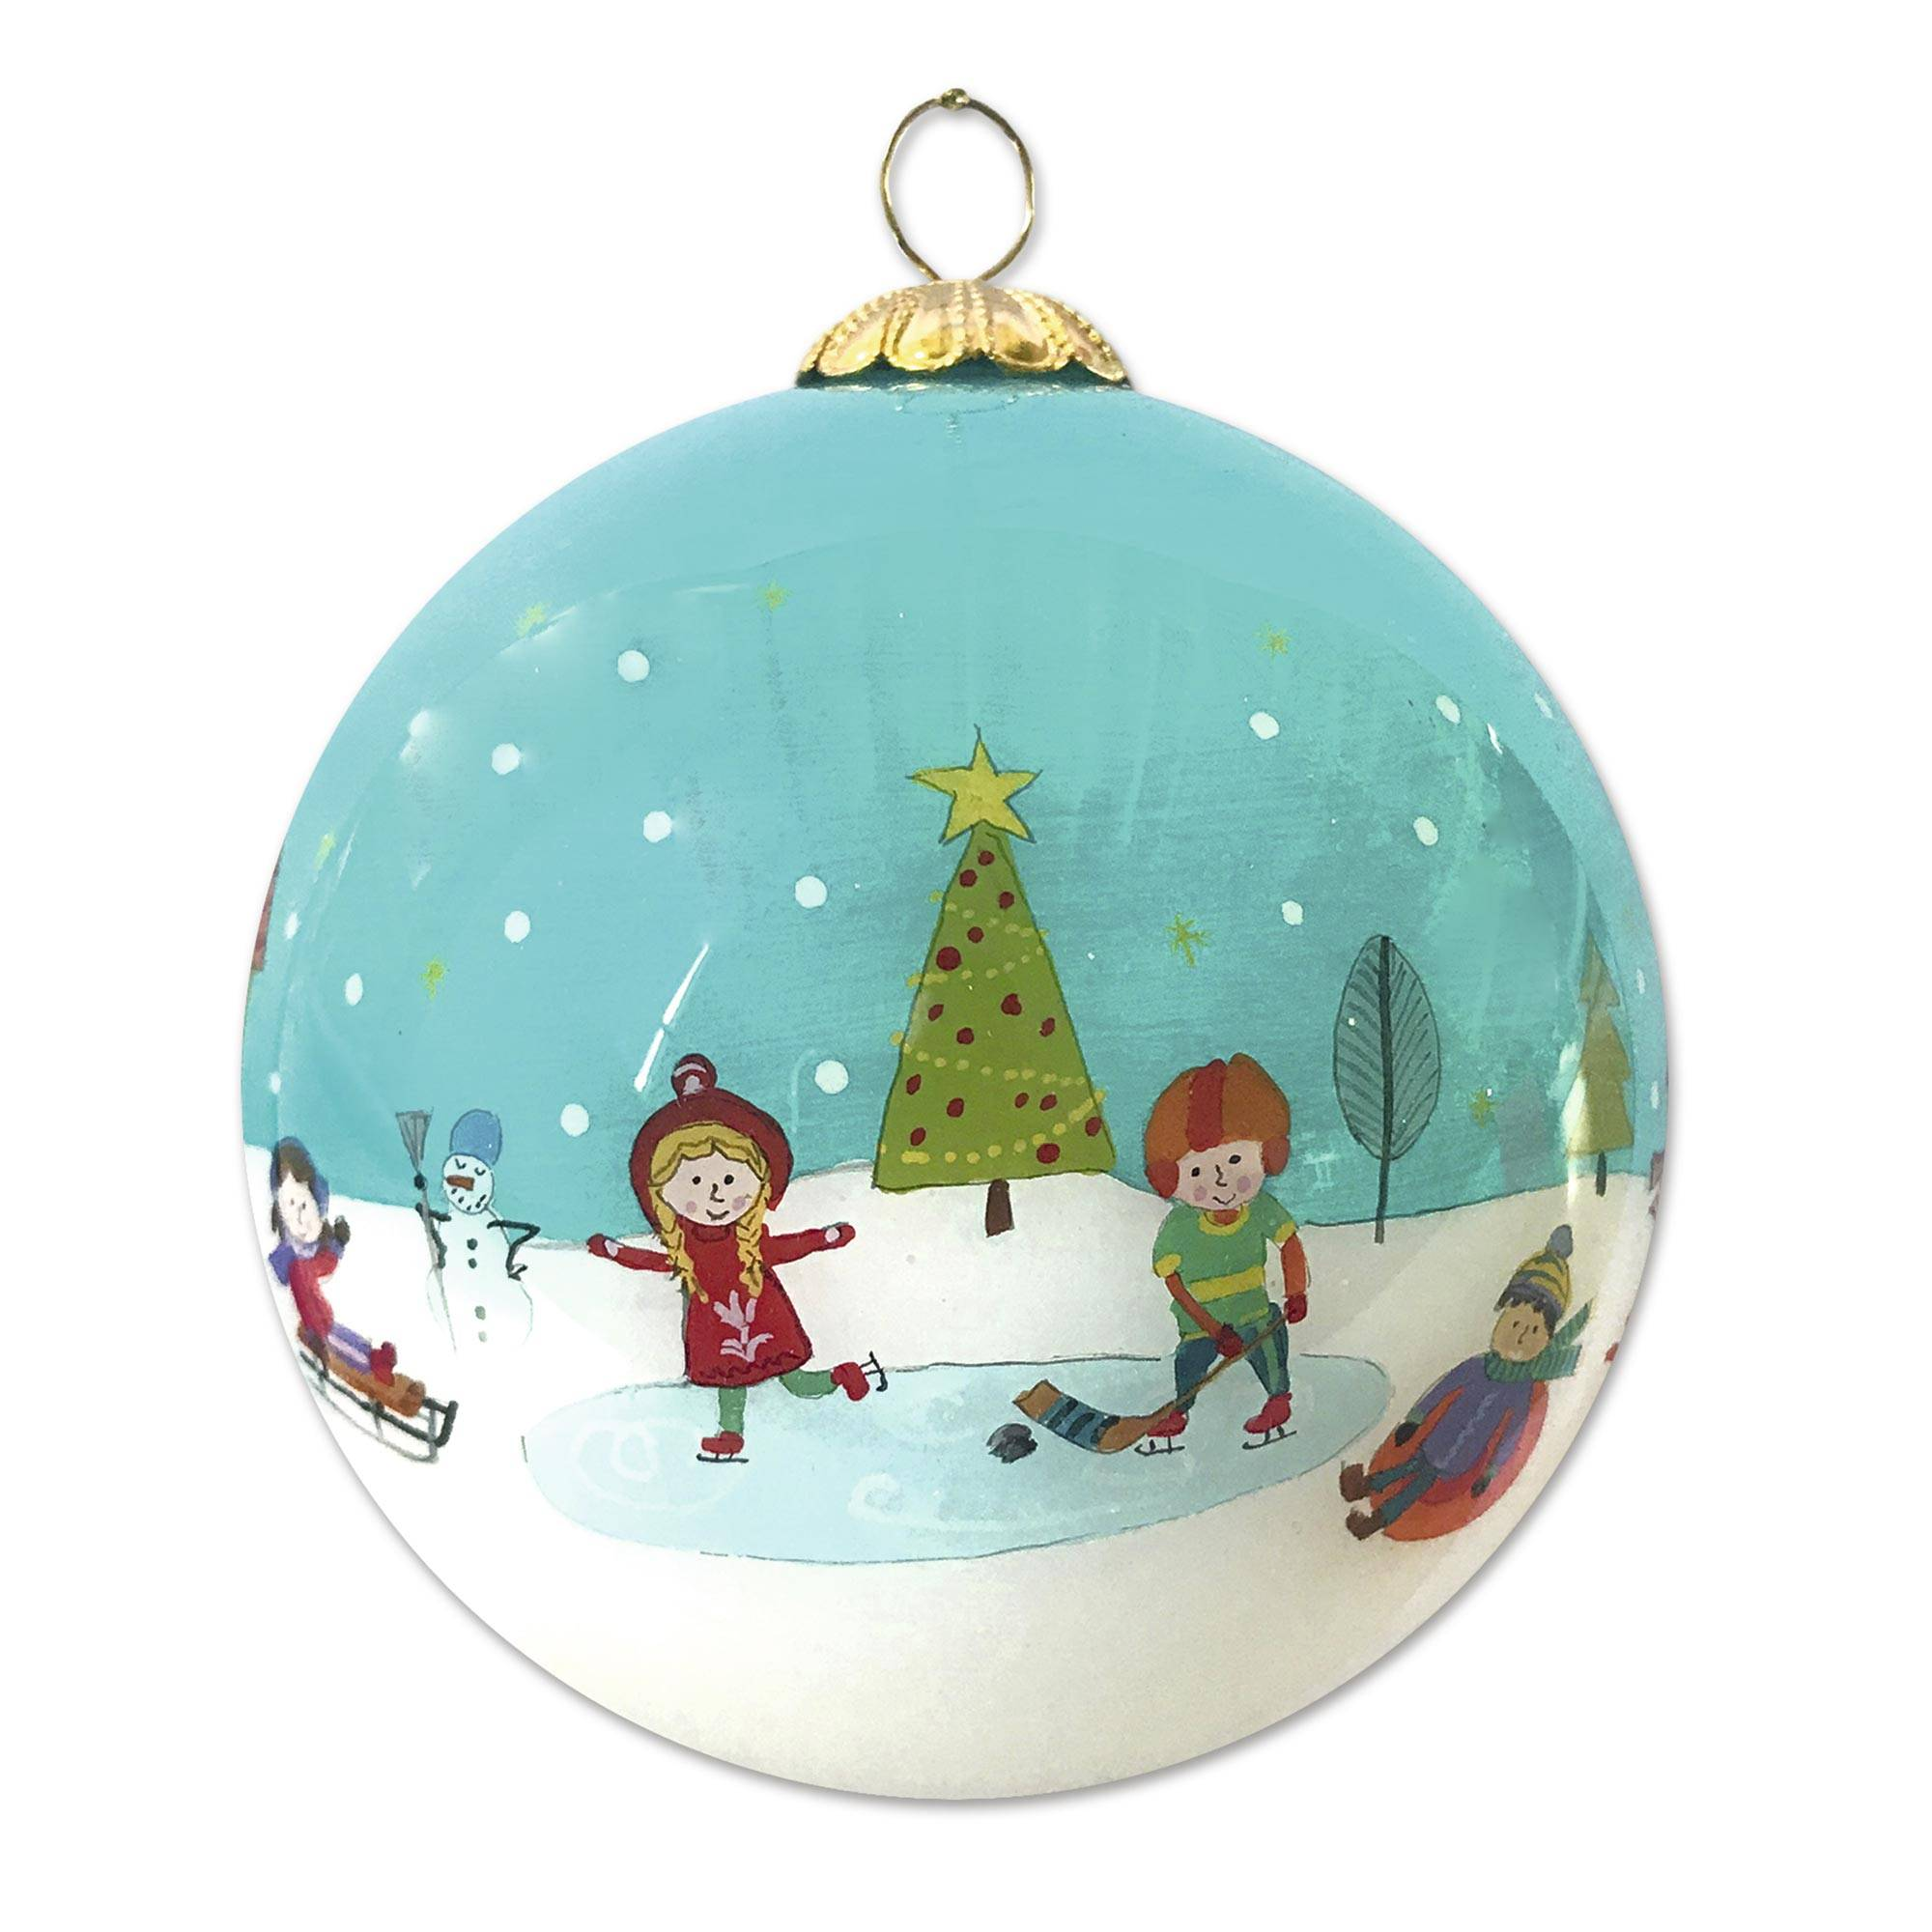 Kids 2020 Christmas Ornaments UNICEF Market   UNICEF 2020 Holiday Ornament   Kids In The Snow